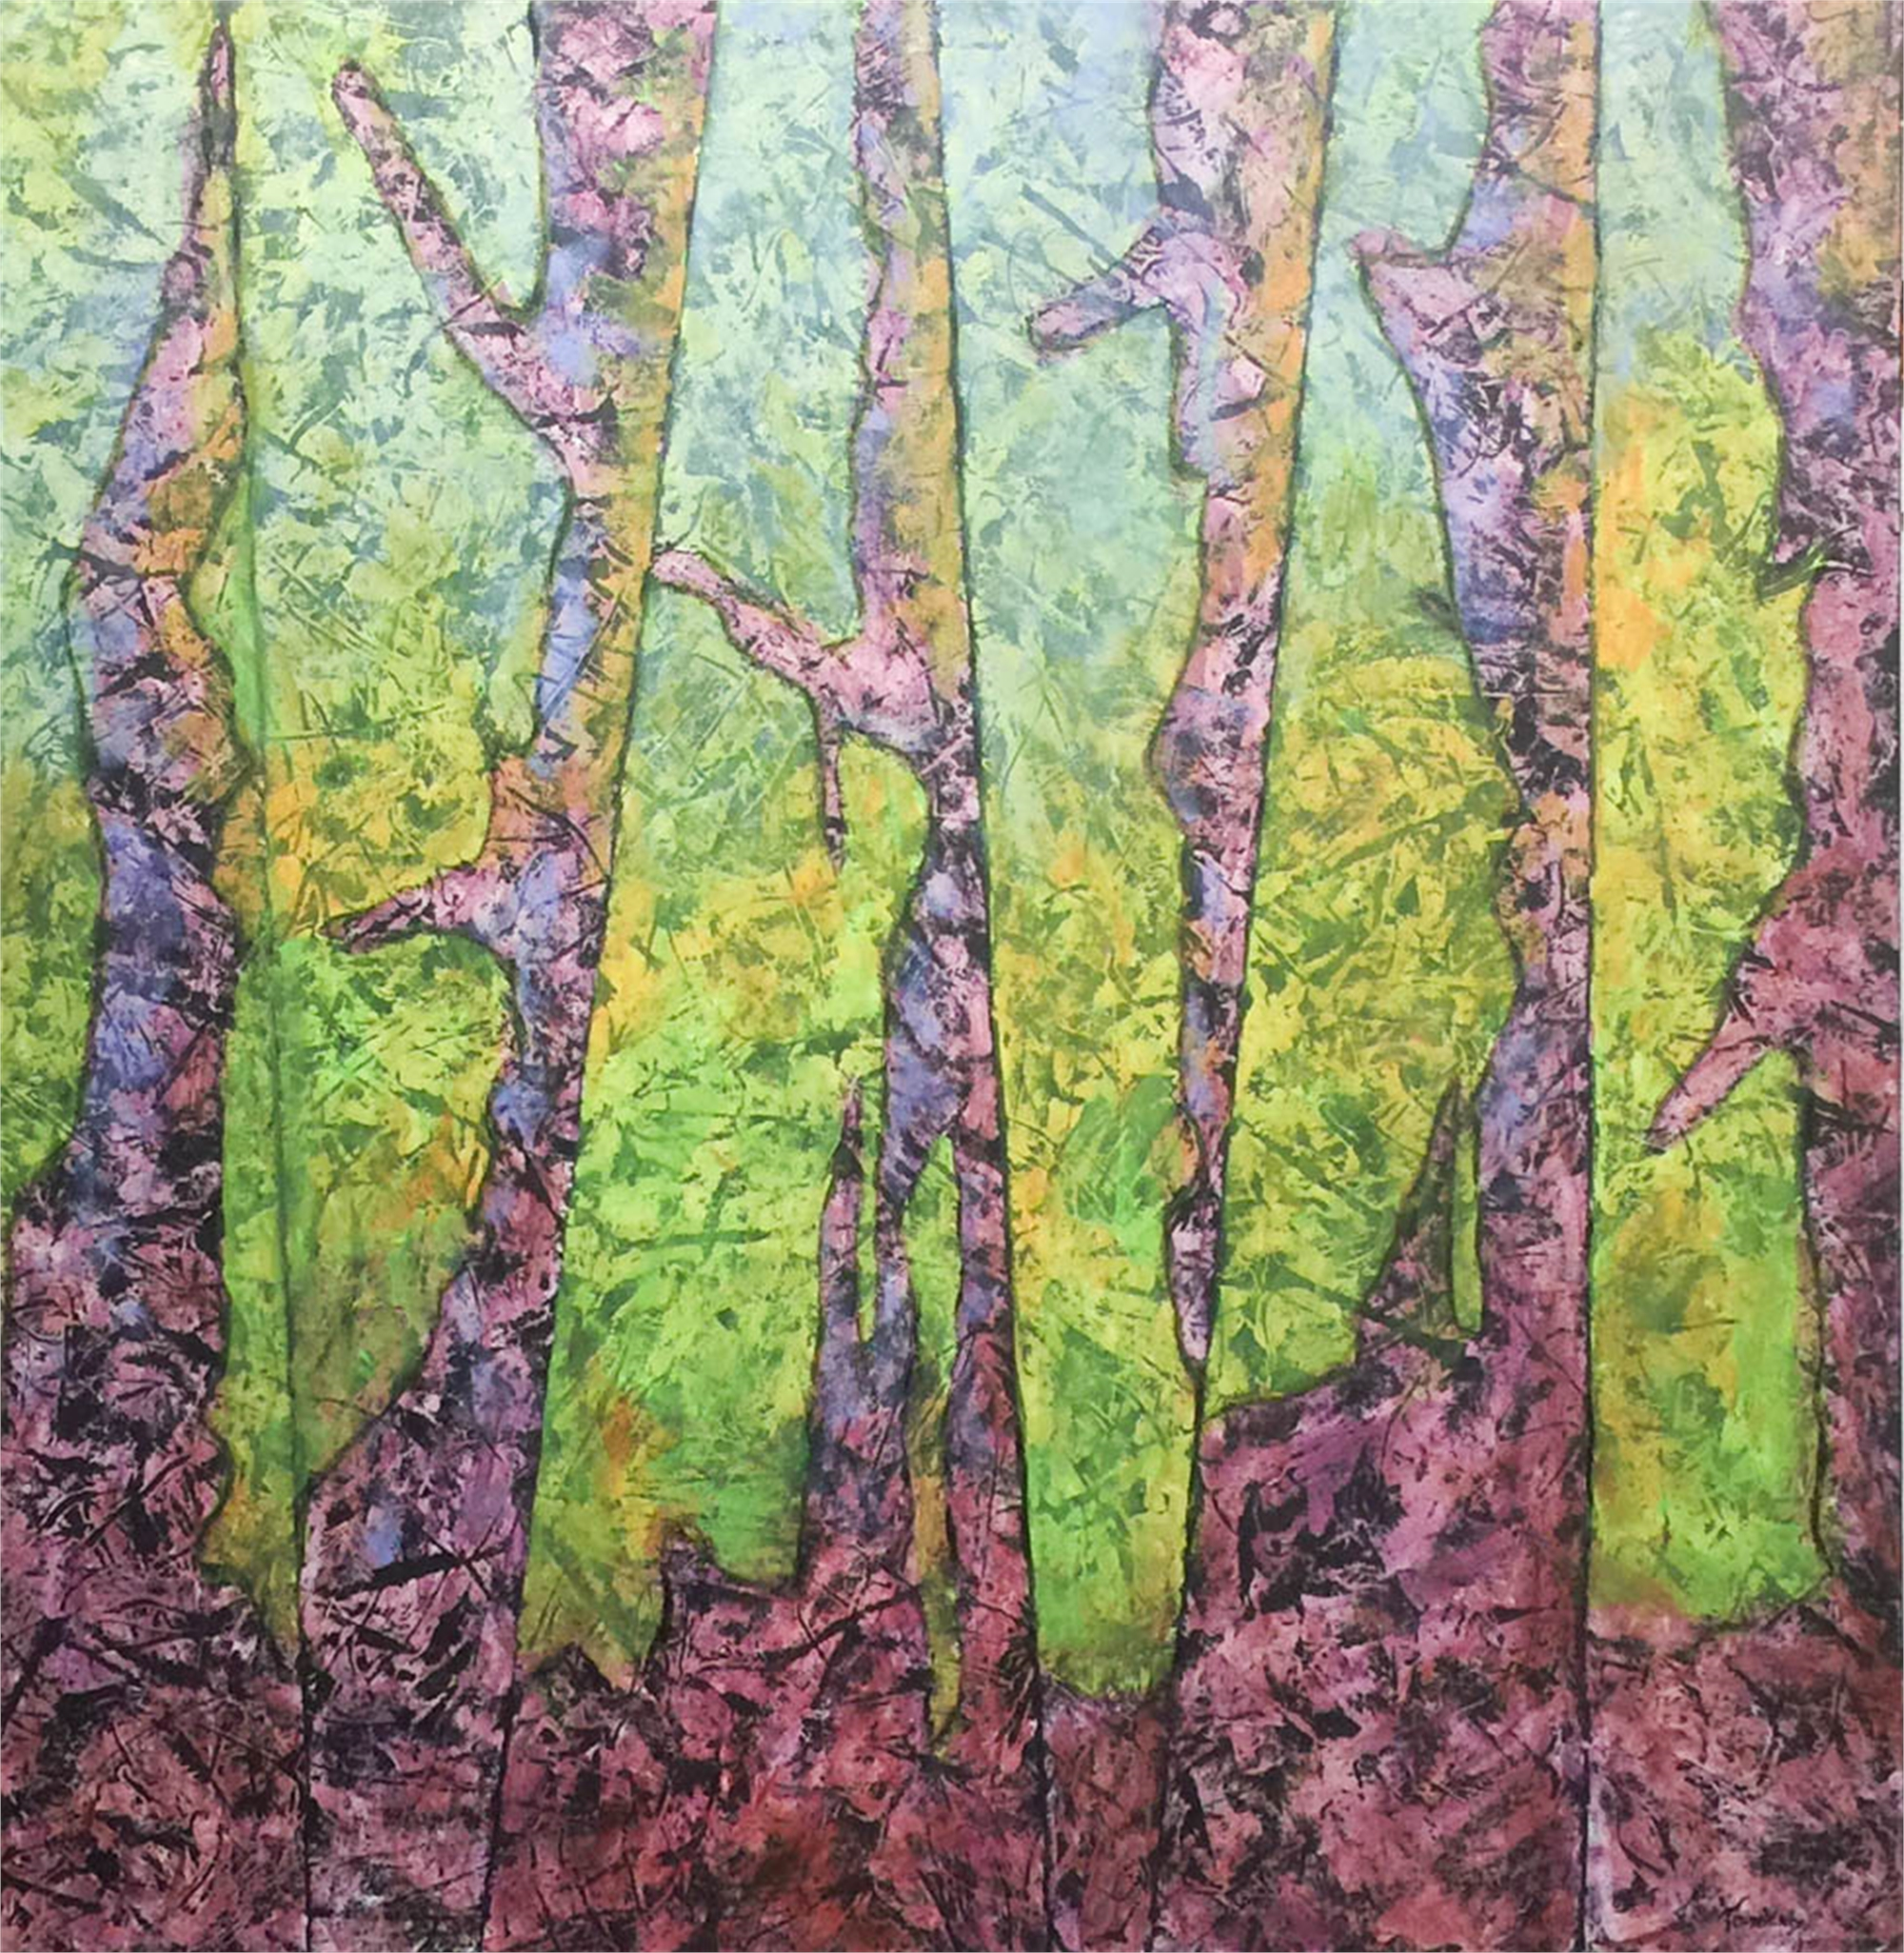 Abstract Forest 1 by John Townsend